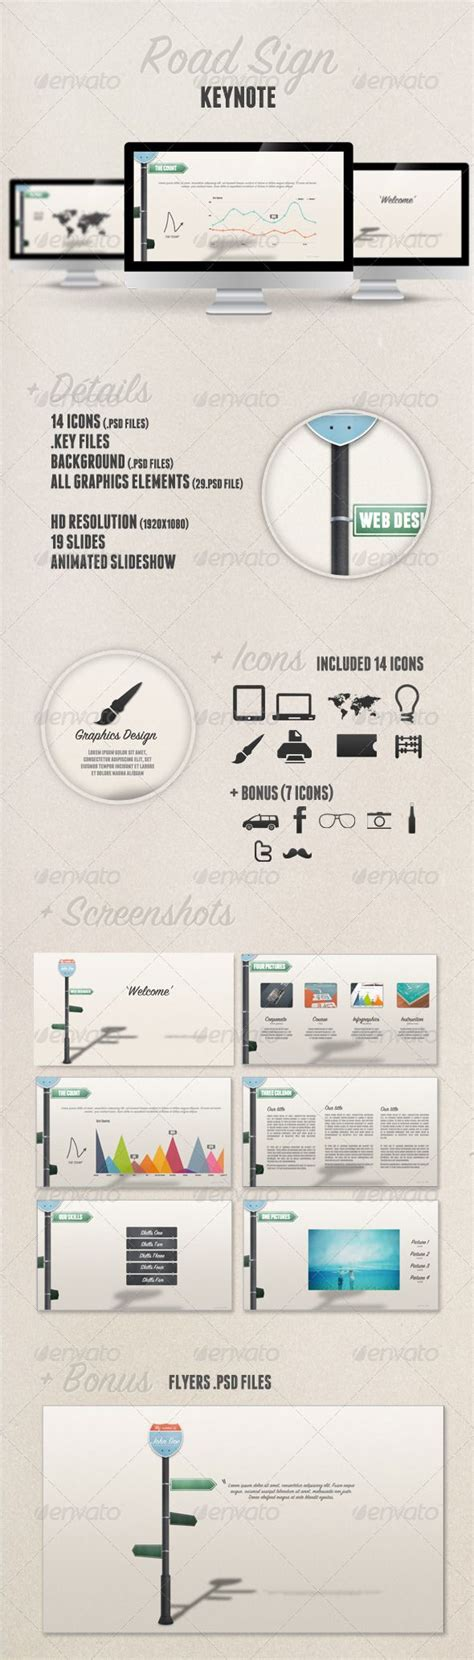 keynote theme scientific presentation 124 best images about keynote themes templates on